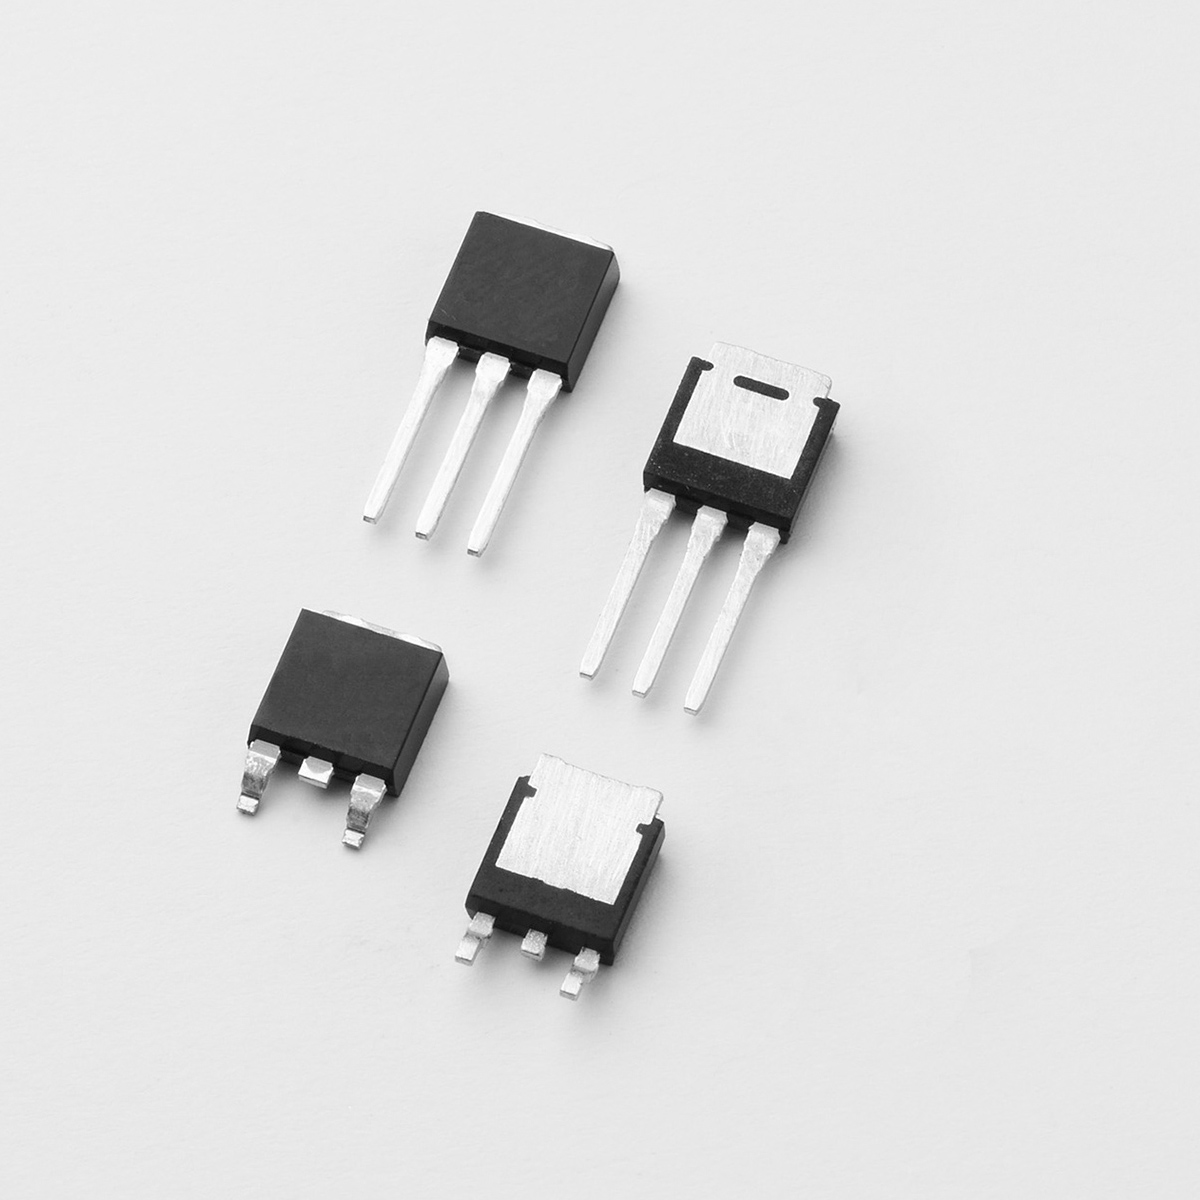 Surface Mount Circuit Protection Device Runs At High Temperatures In Tester For Scr Diodes And Transistors